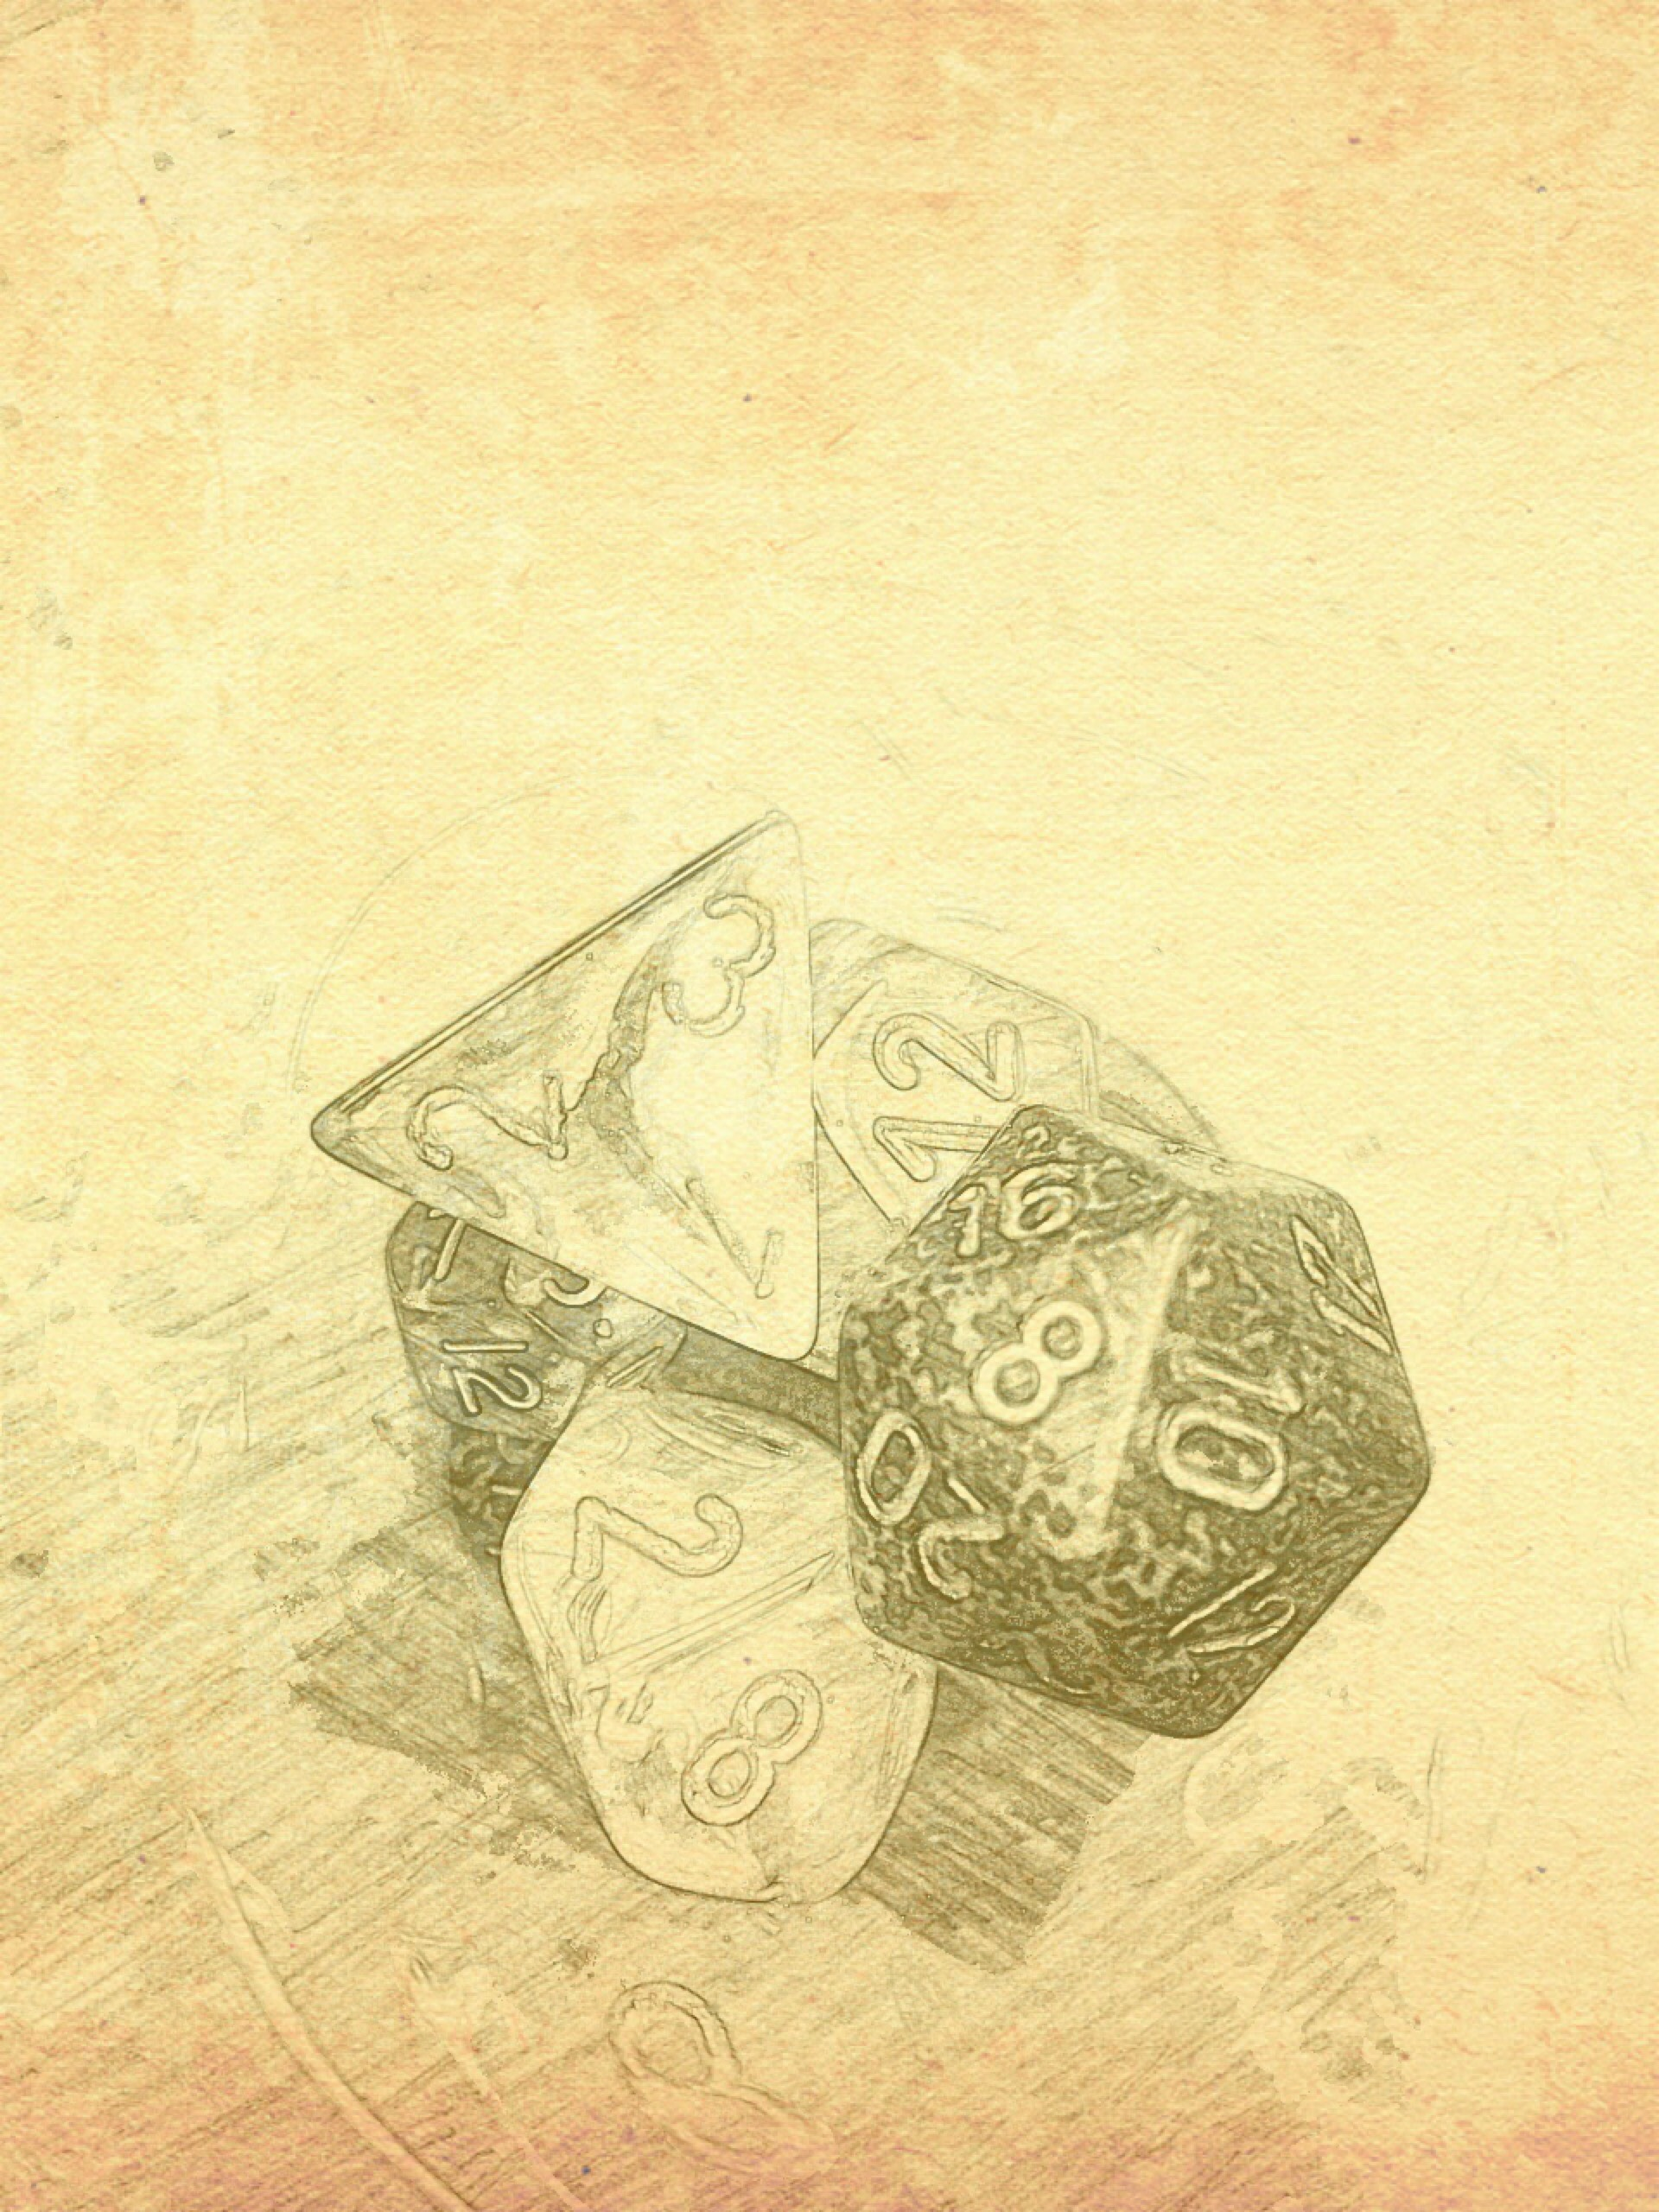 Yes, I only have pictures of dice at the moment. I'm working on it.